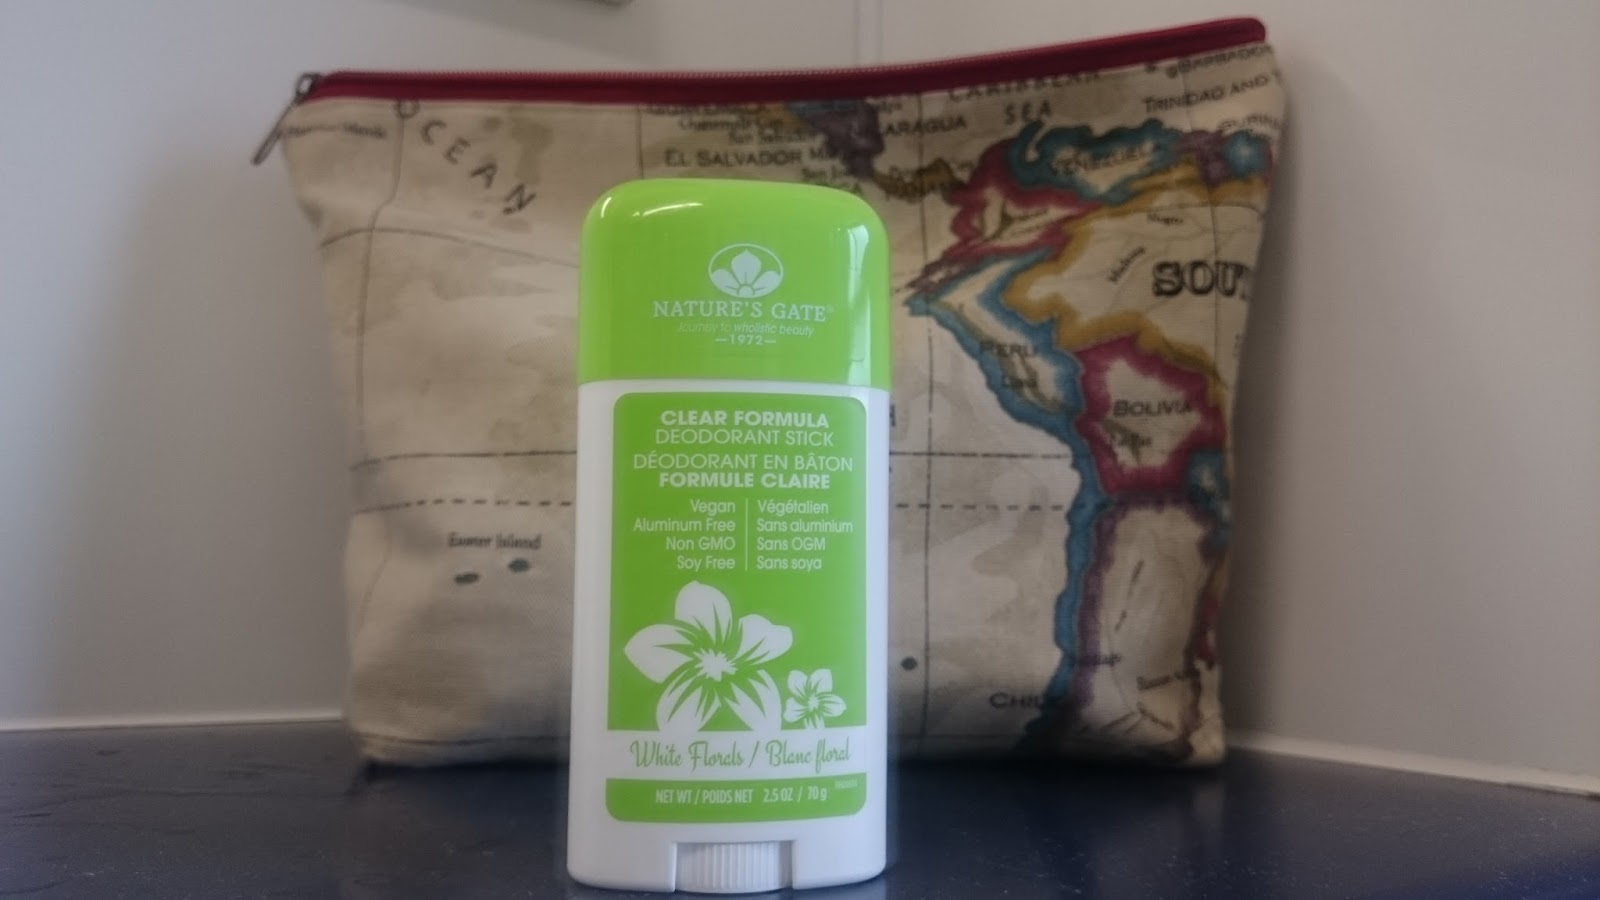 green-and-white-bottle-of-natures-gate-deodorant-with-washbag-in-background